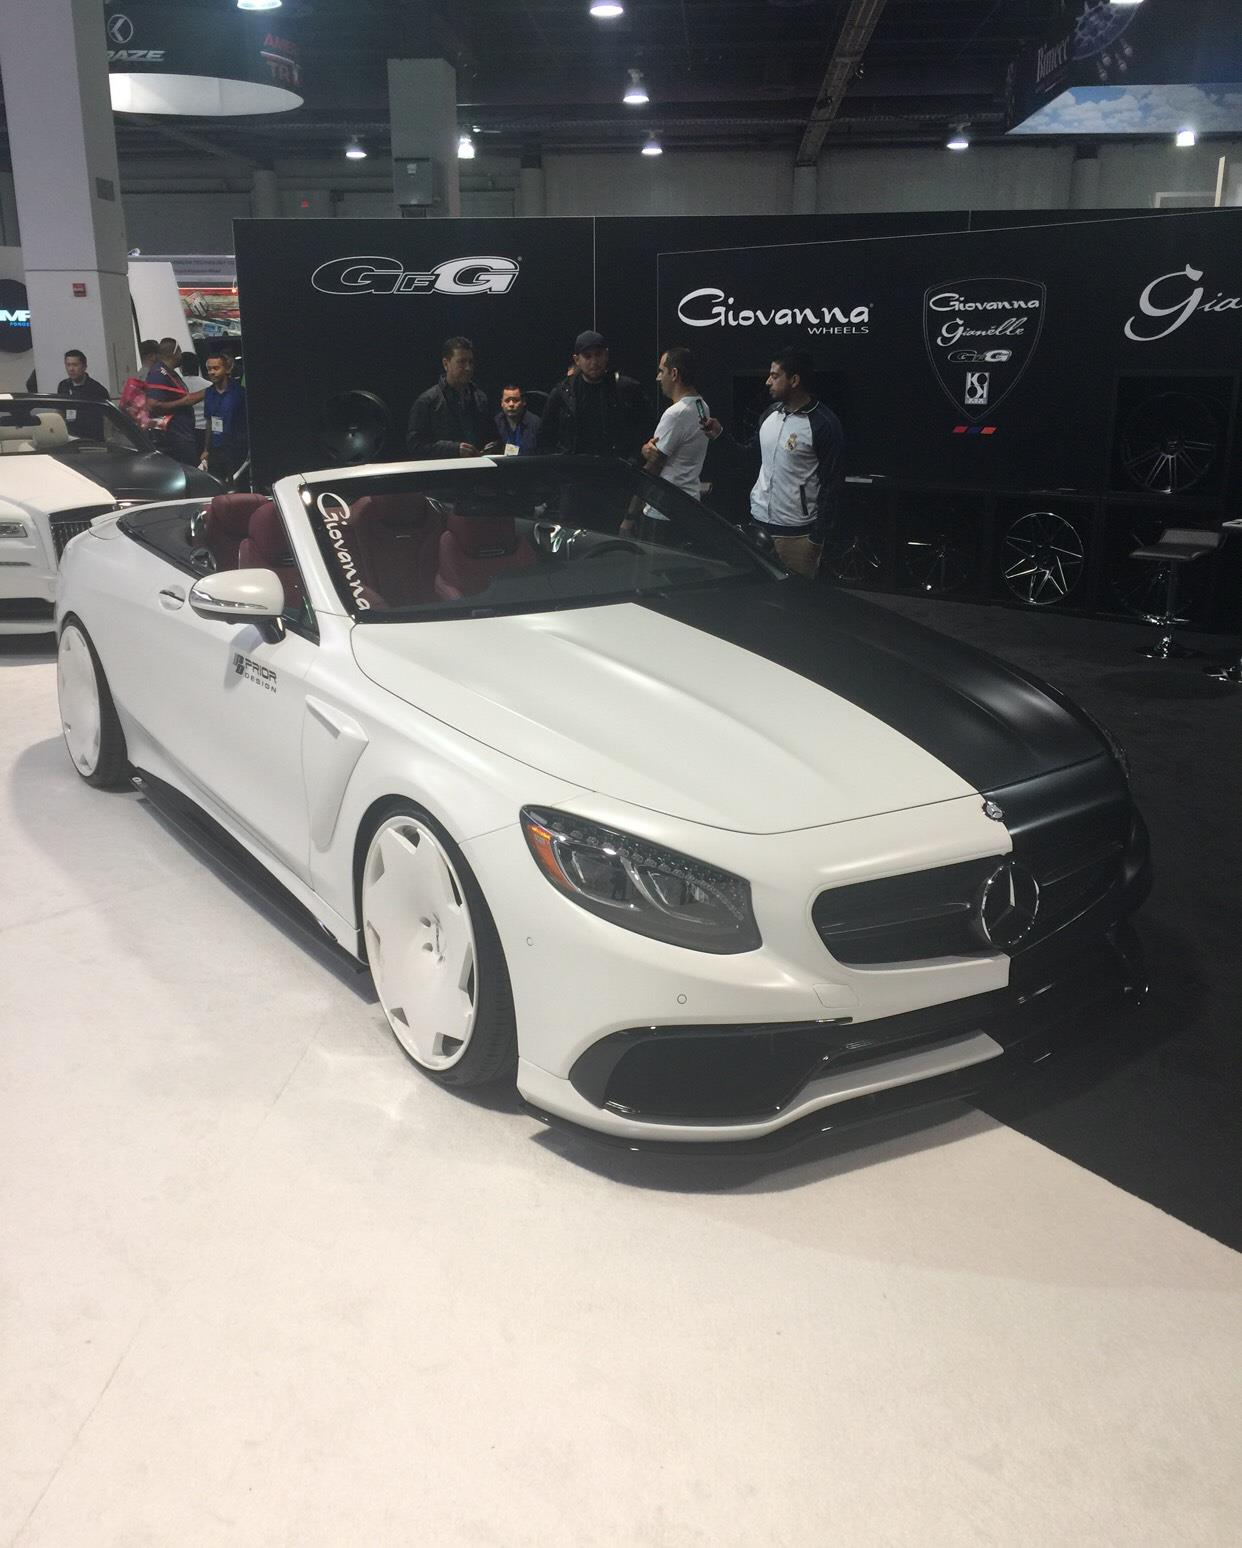 #mercedesbenz #sconvertible #sema2016